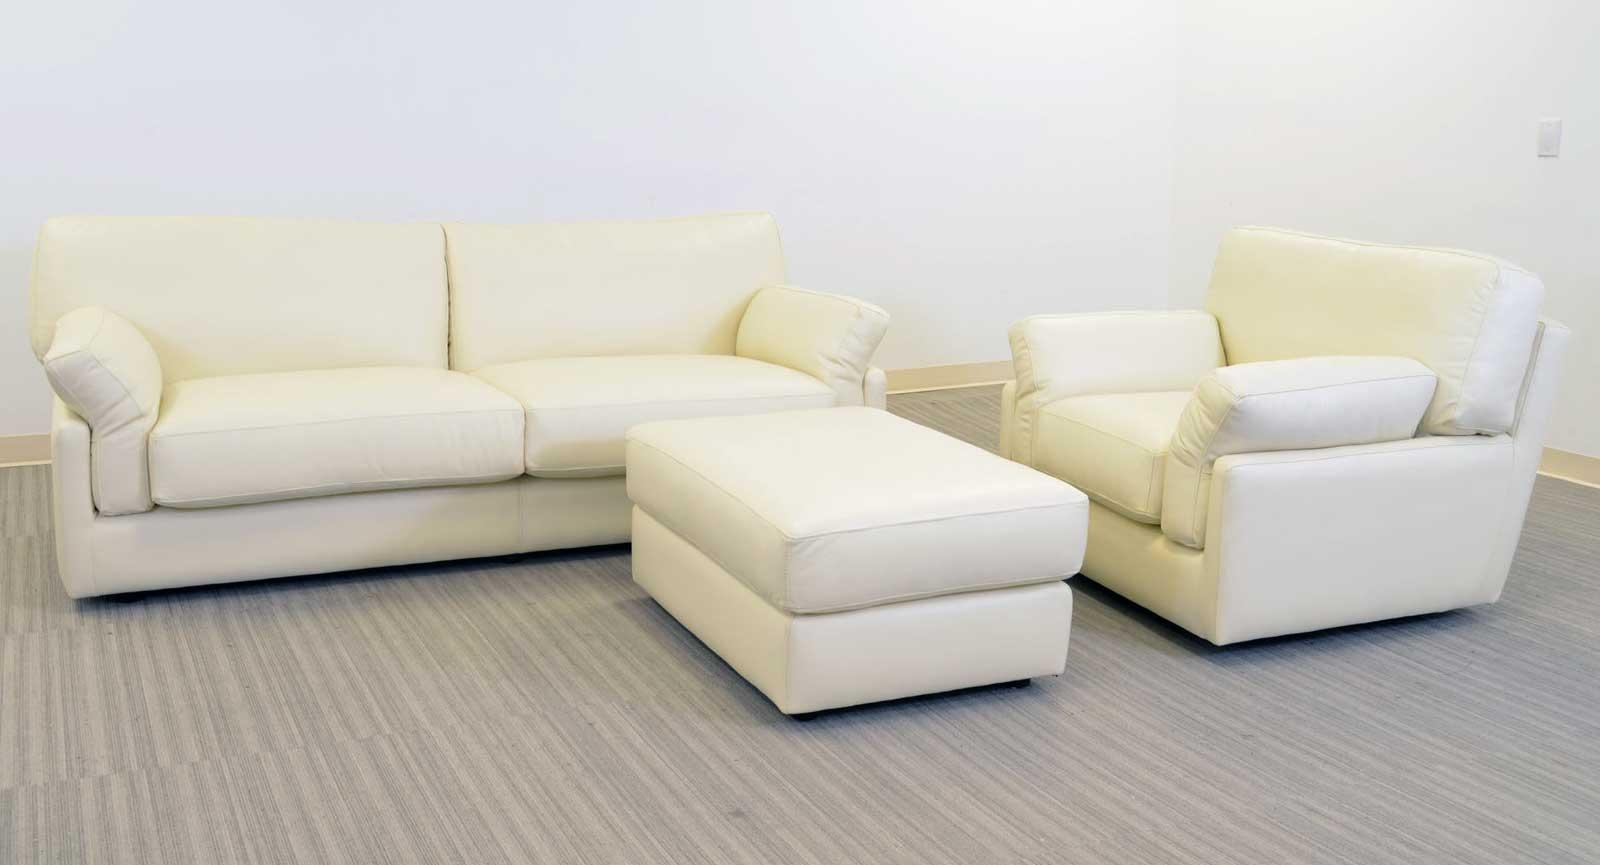 Oasis Sofa ‹‹ The Leather Sofa Company Throughout Sofa Chair And Ottoman (Image 13 of 20)